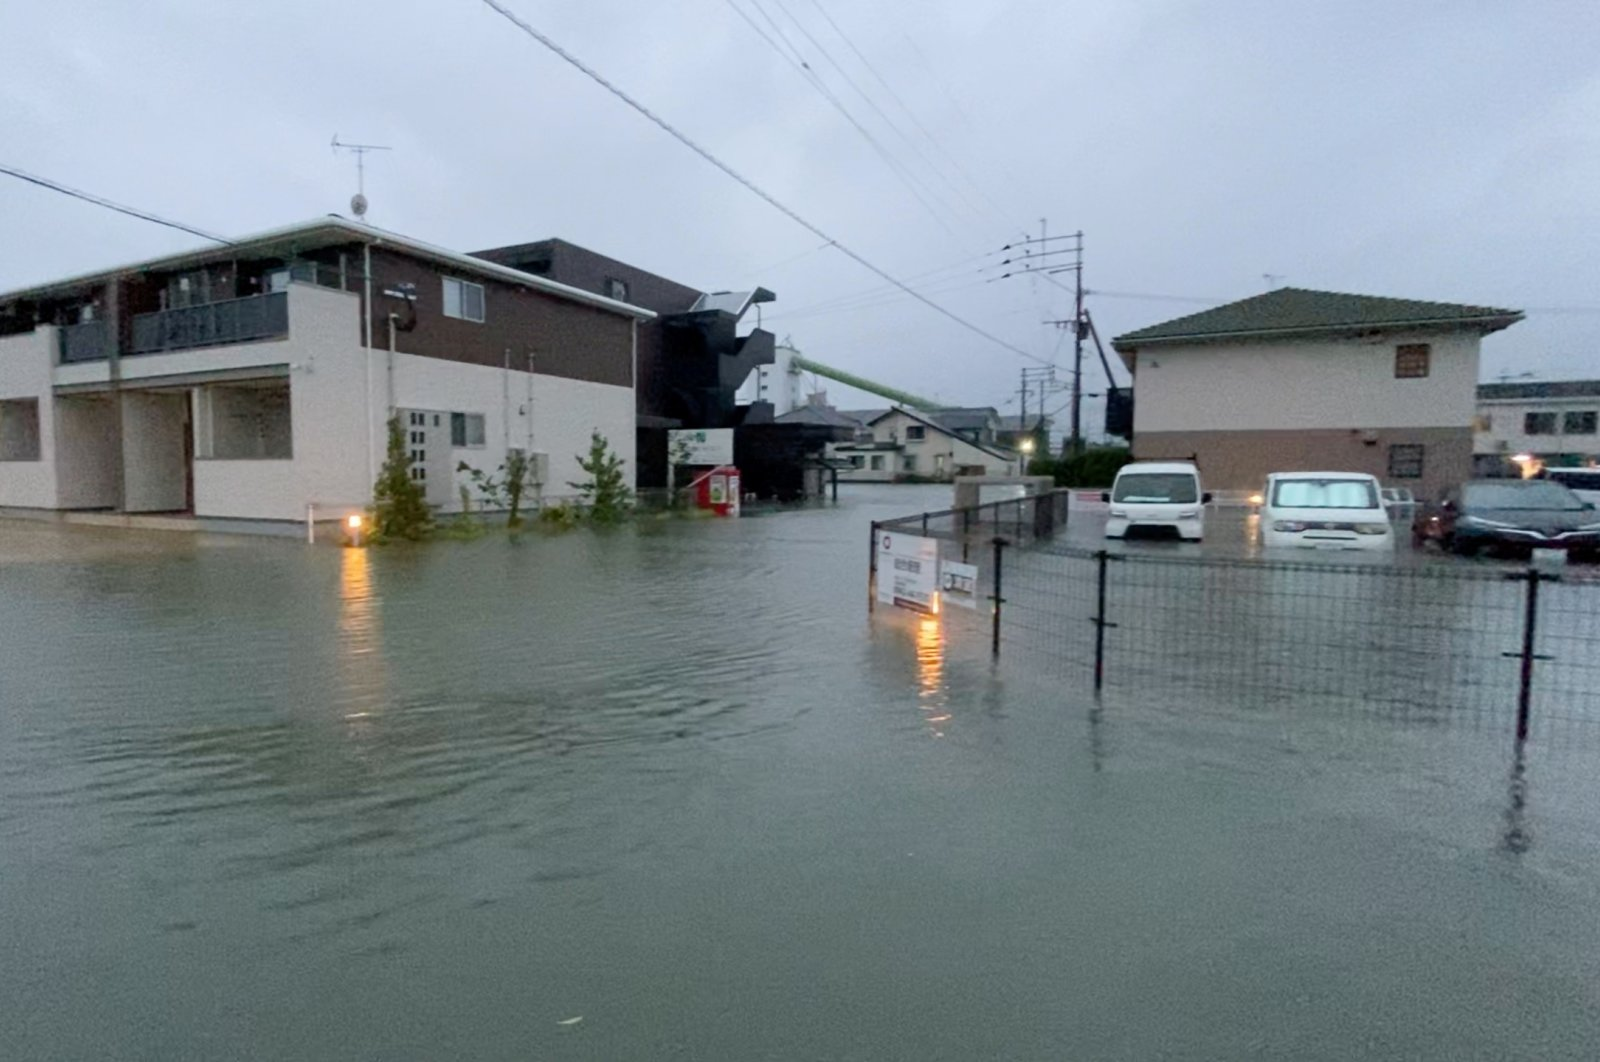 A person stands at a flooded street during heavy rain in Kurume, Fukuoka Prefecture, Japan August 14, 2021, in this still image taken from video provided on social media. (Photo courtesy of @Napspans on Twitter / via Reuters)